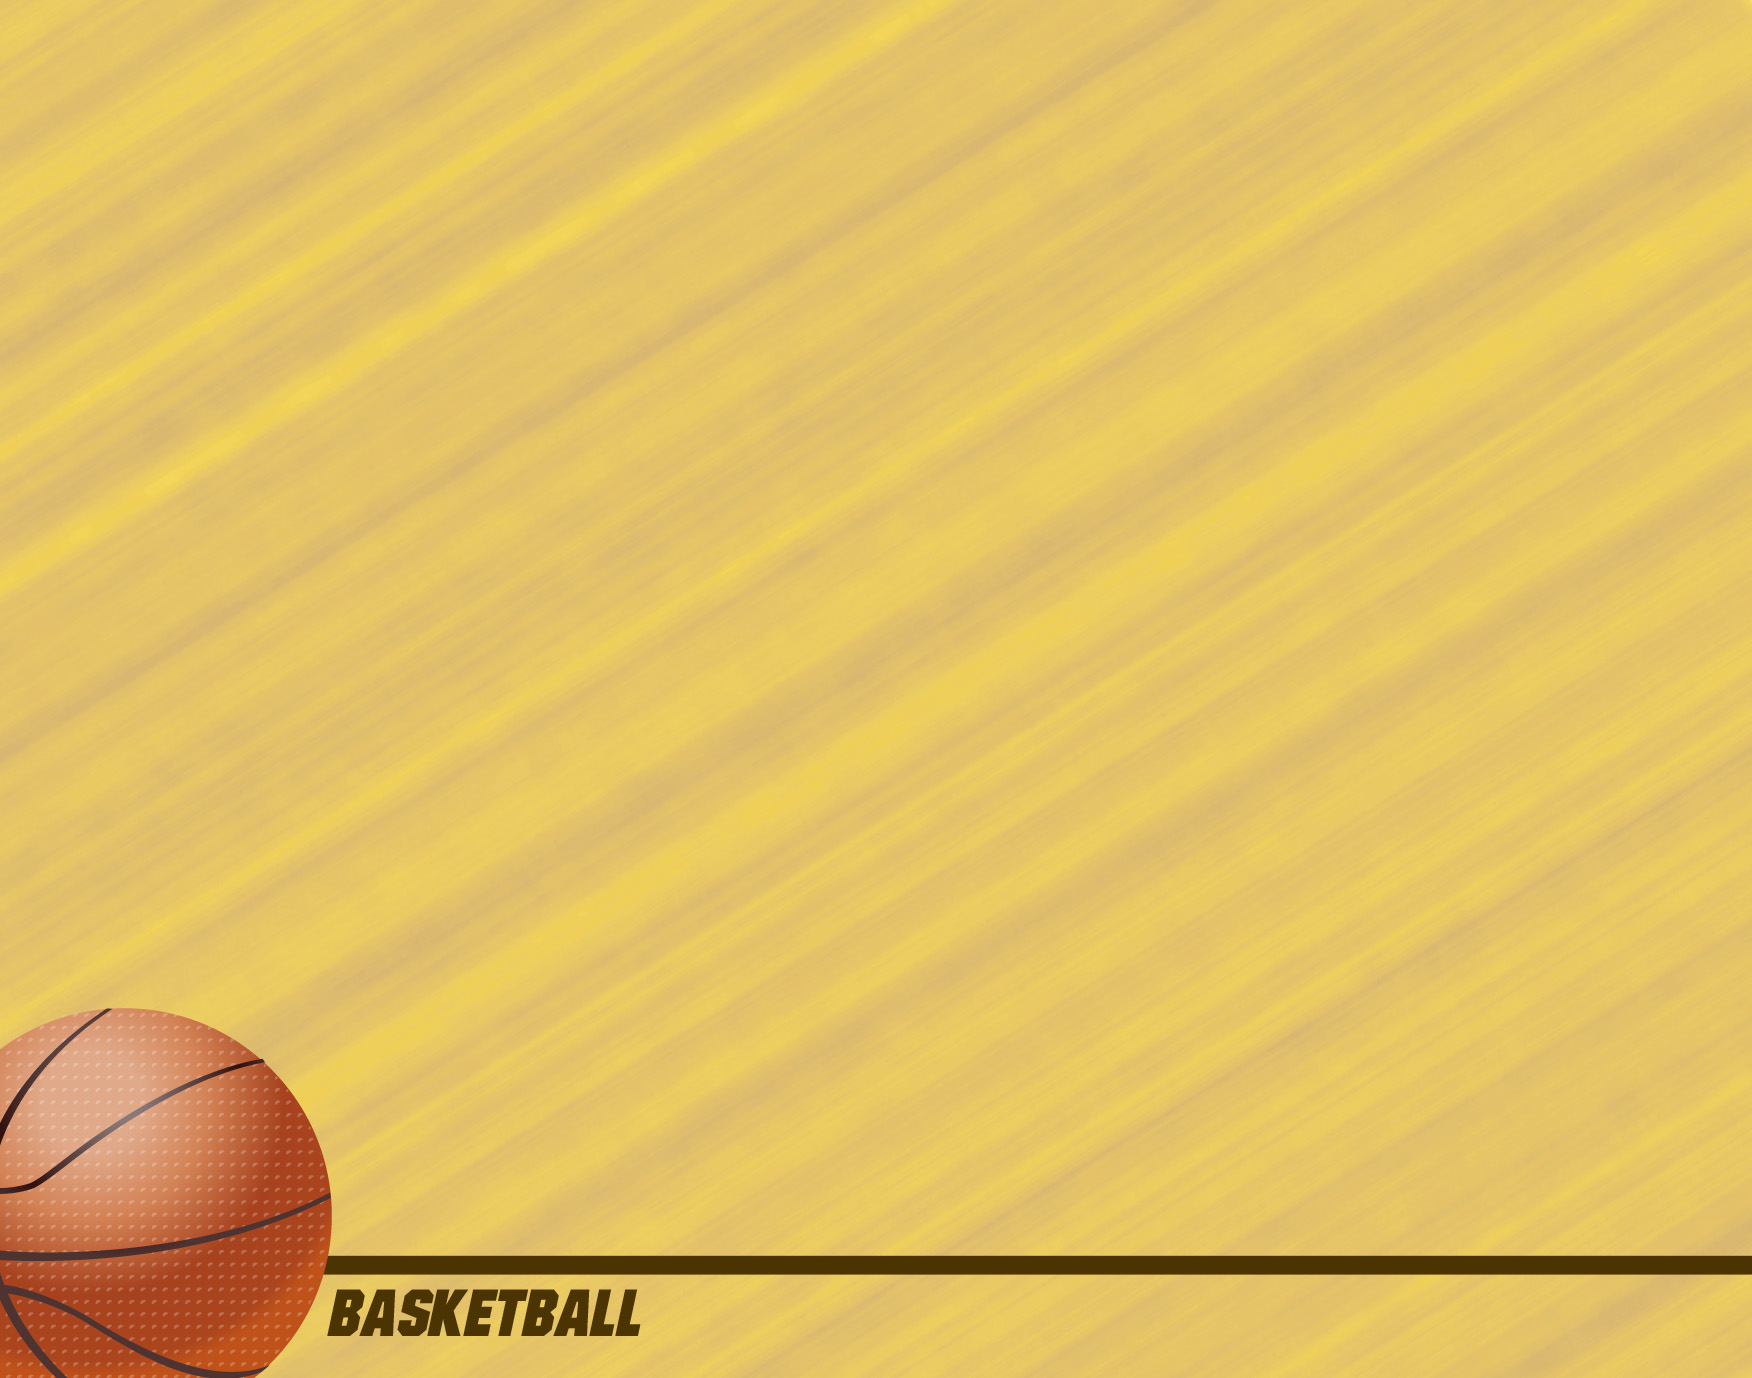 free basketball backgrounds